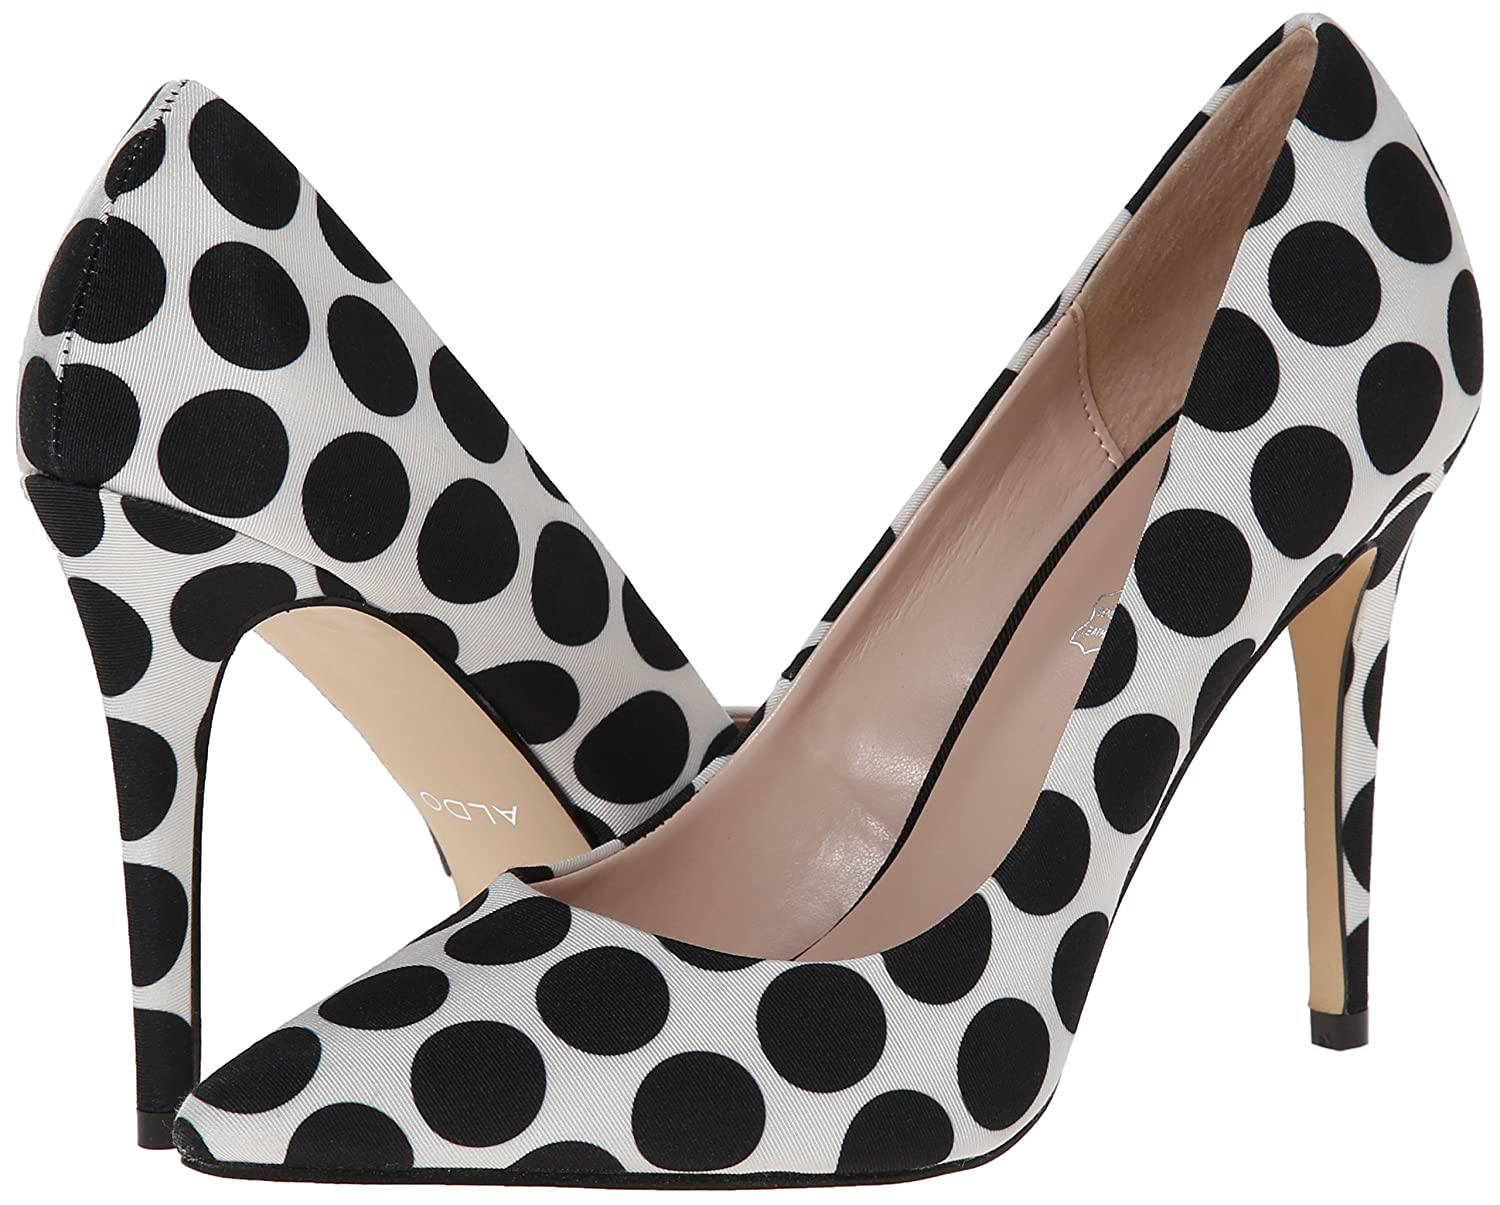 Aldo Women's Choewia Dress Pump, White/Black, 39 EU/8.5 B US: Buy Online at  Low Prices in India - Amazon.in